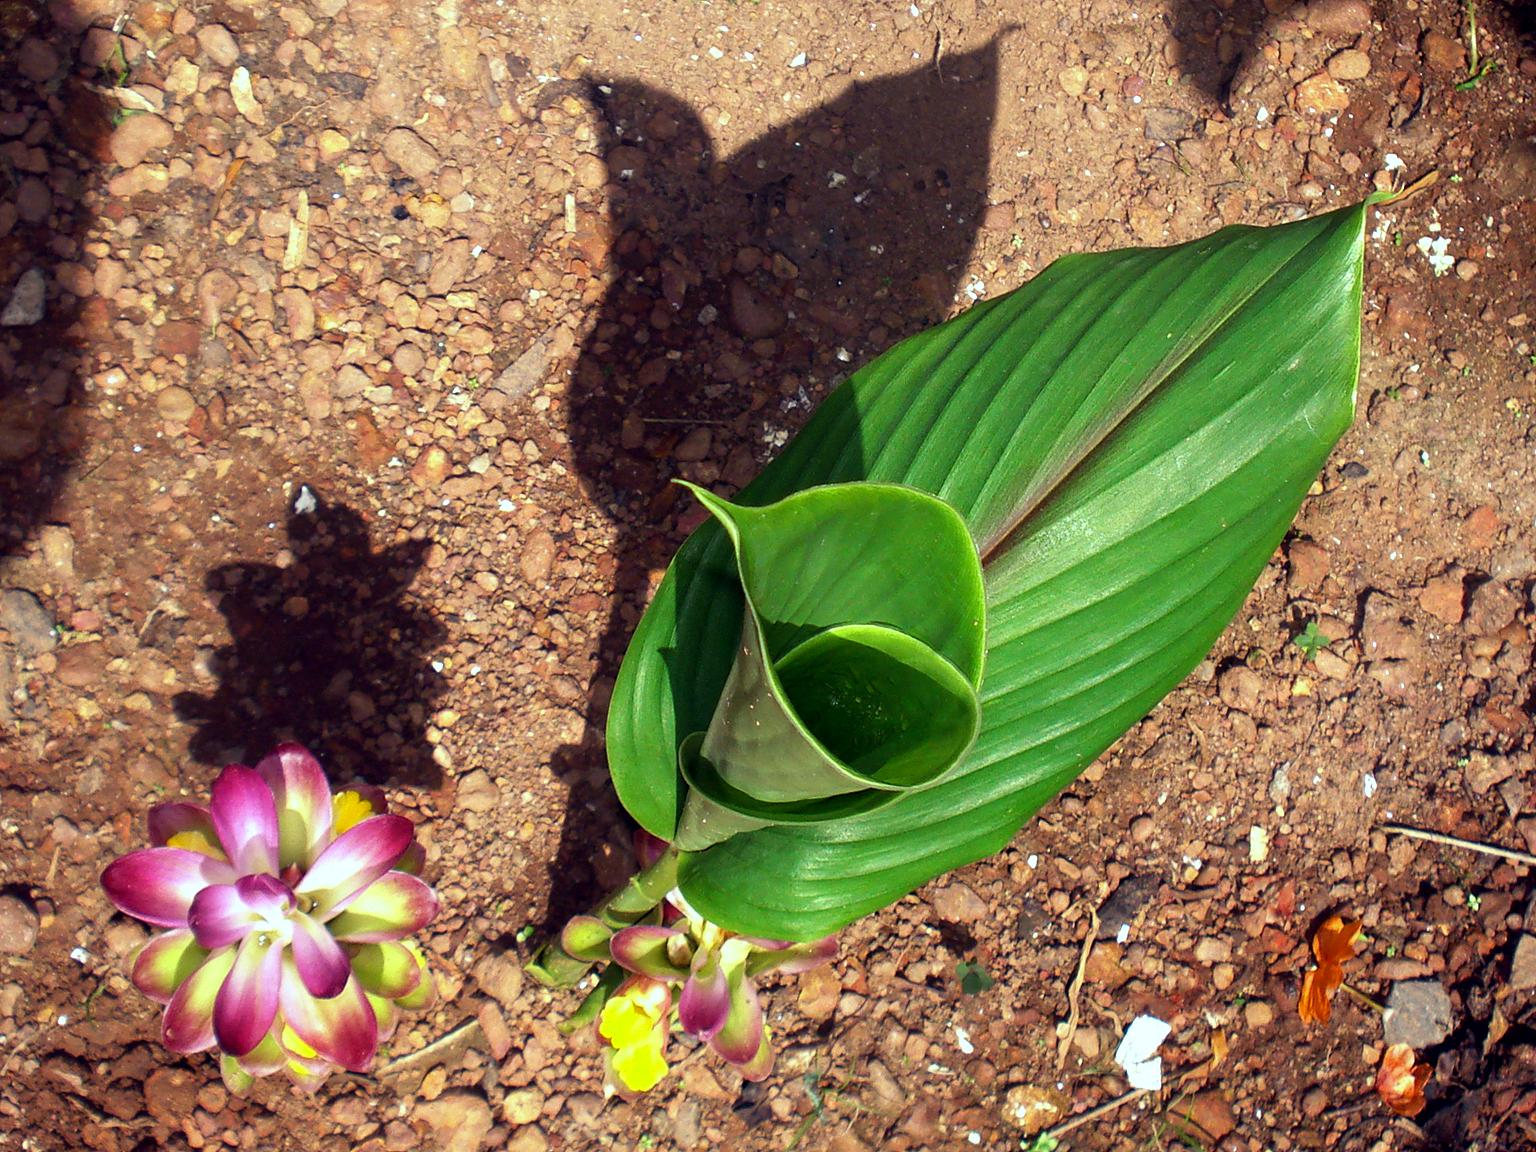 File:Kasthuri manjal plant with flower jpg - Wikimedia Commons